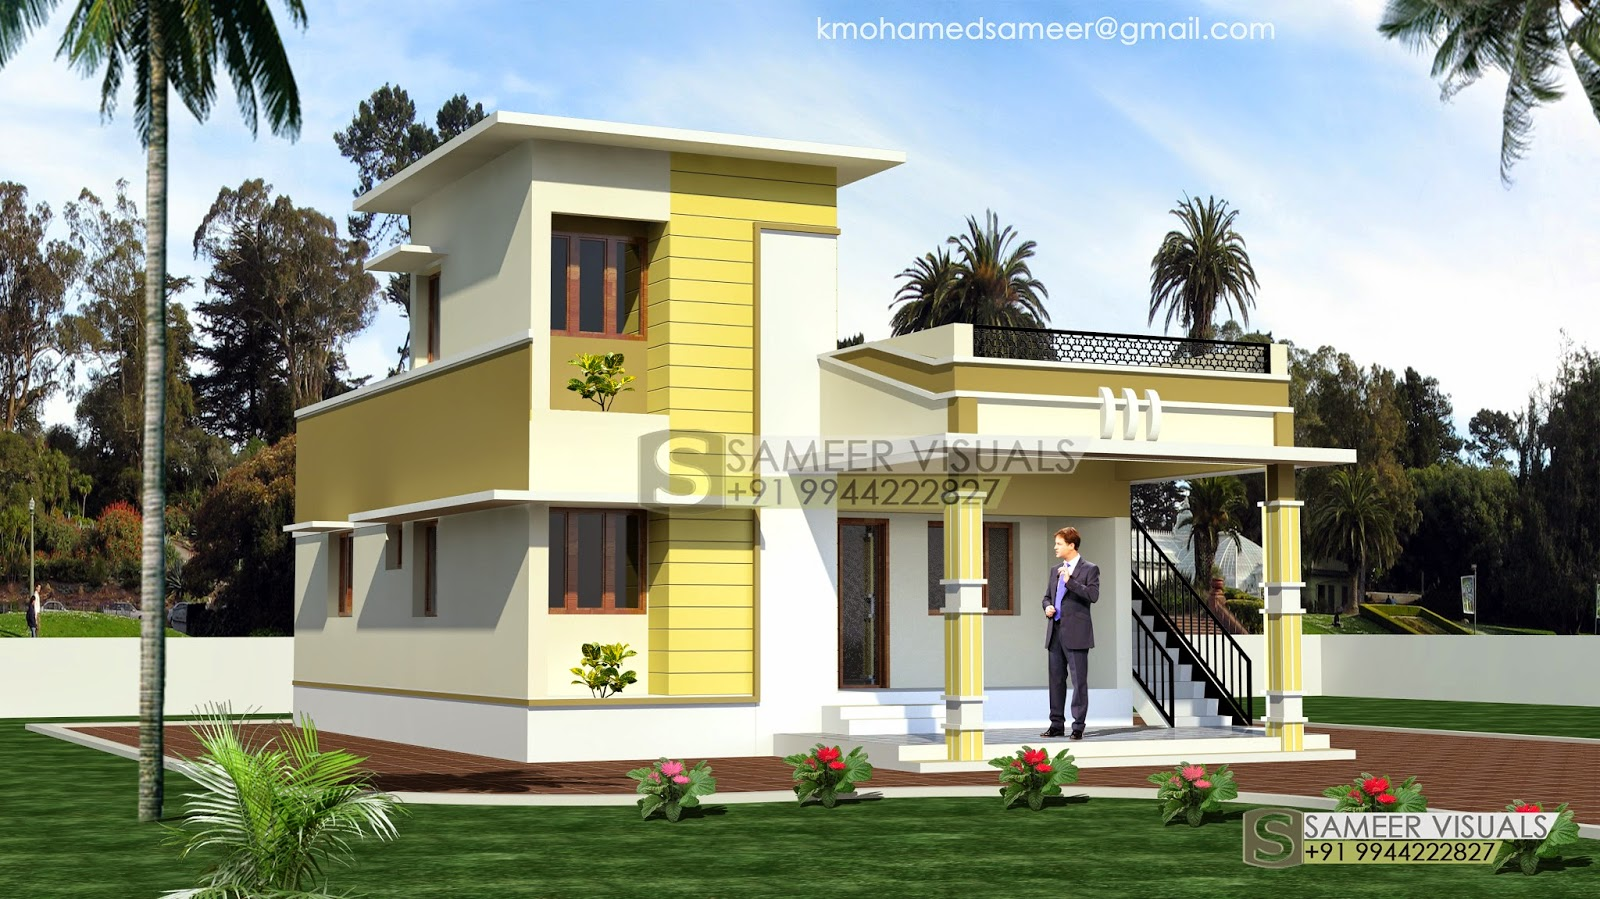 Sameer visuals ground floor elevation for Modern portico designs